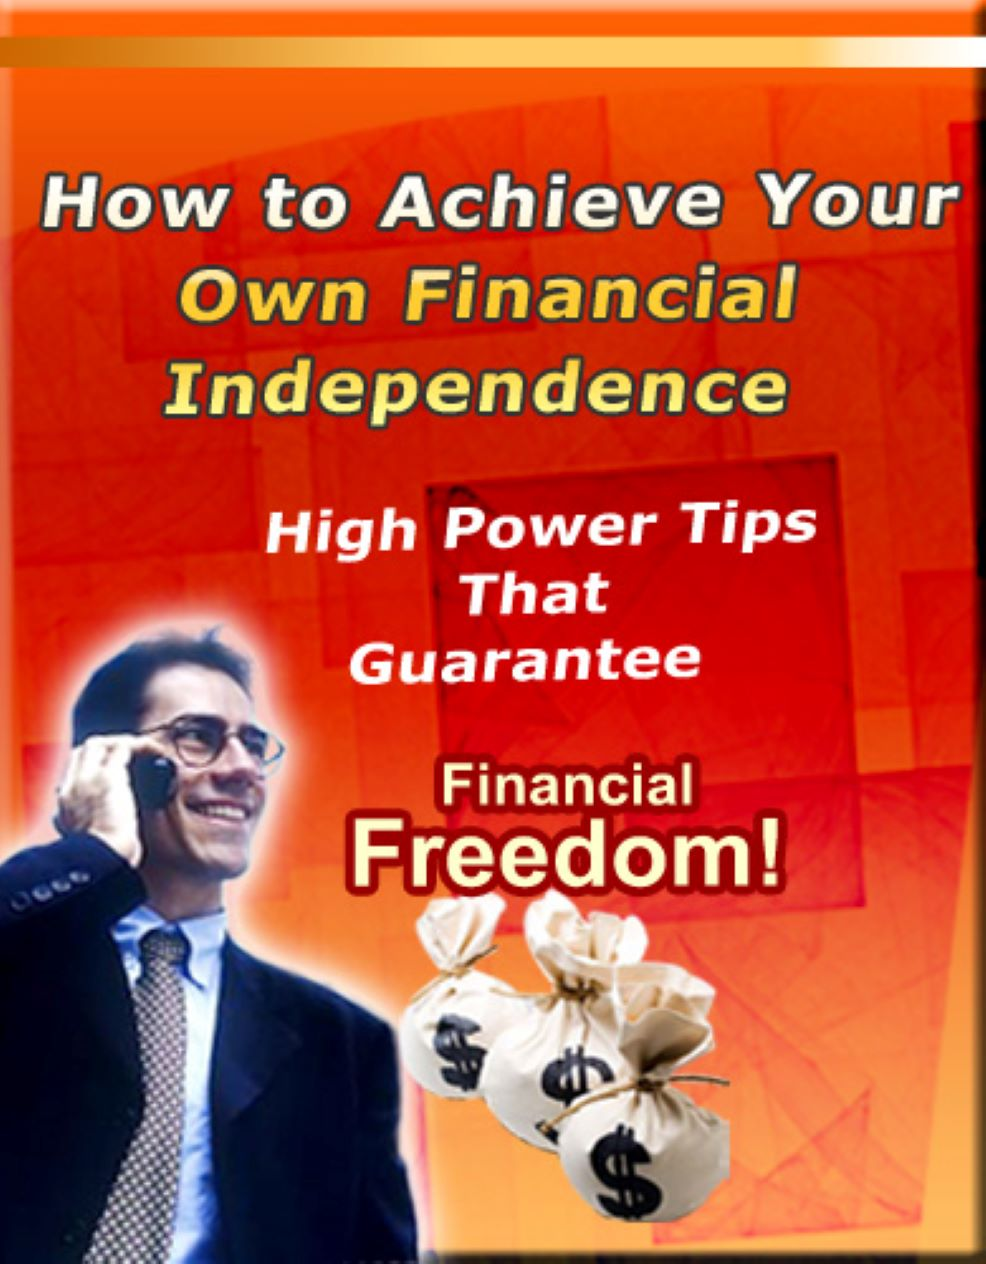 How to Achieve Your Own Financial Independence